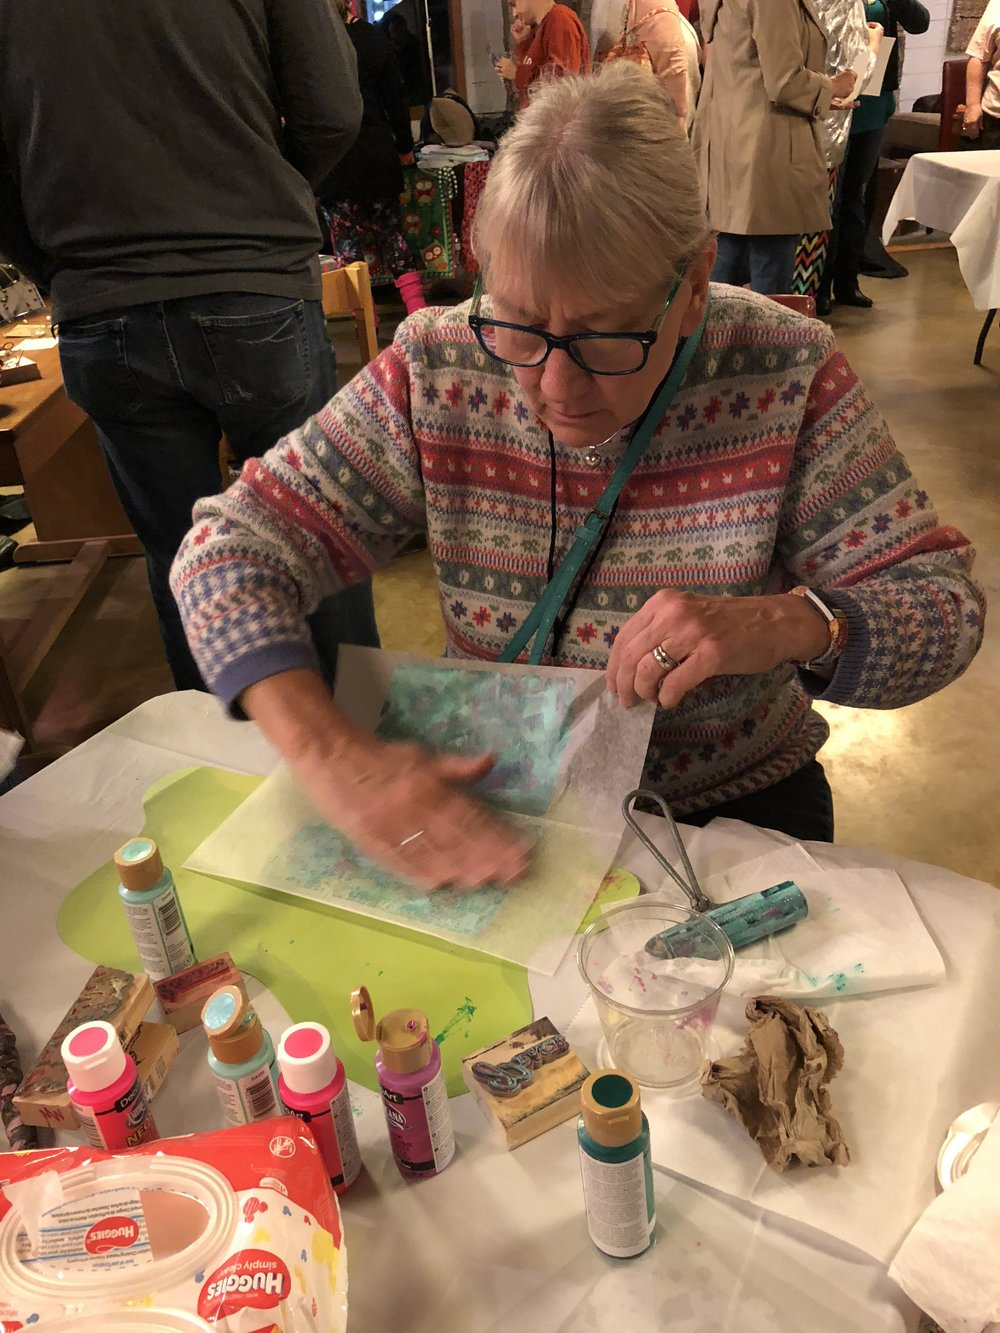 Friday Night 80's Party_Cheri Jorgenson at Gelli Plate Demo.JPG